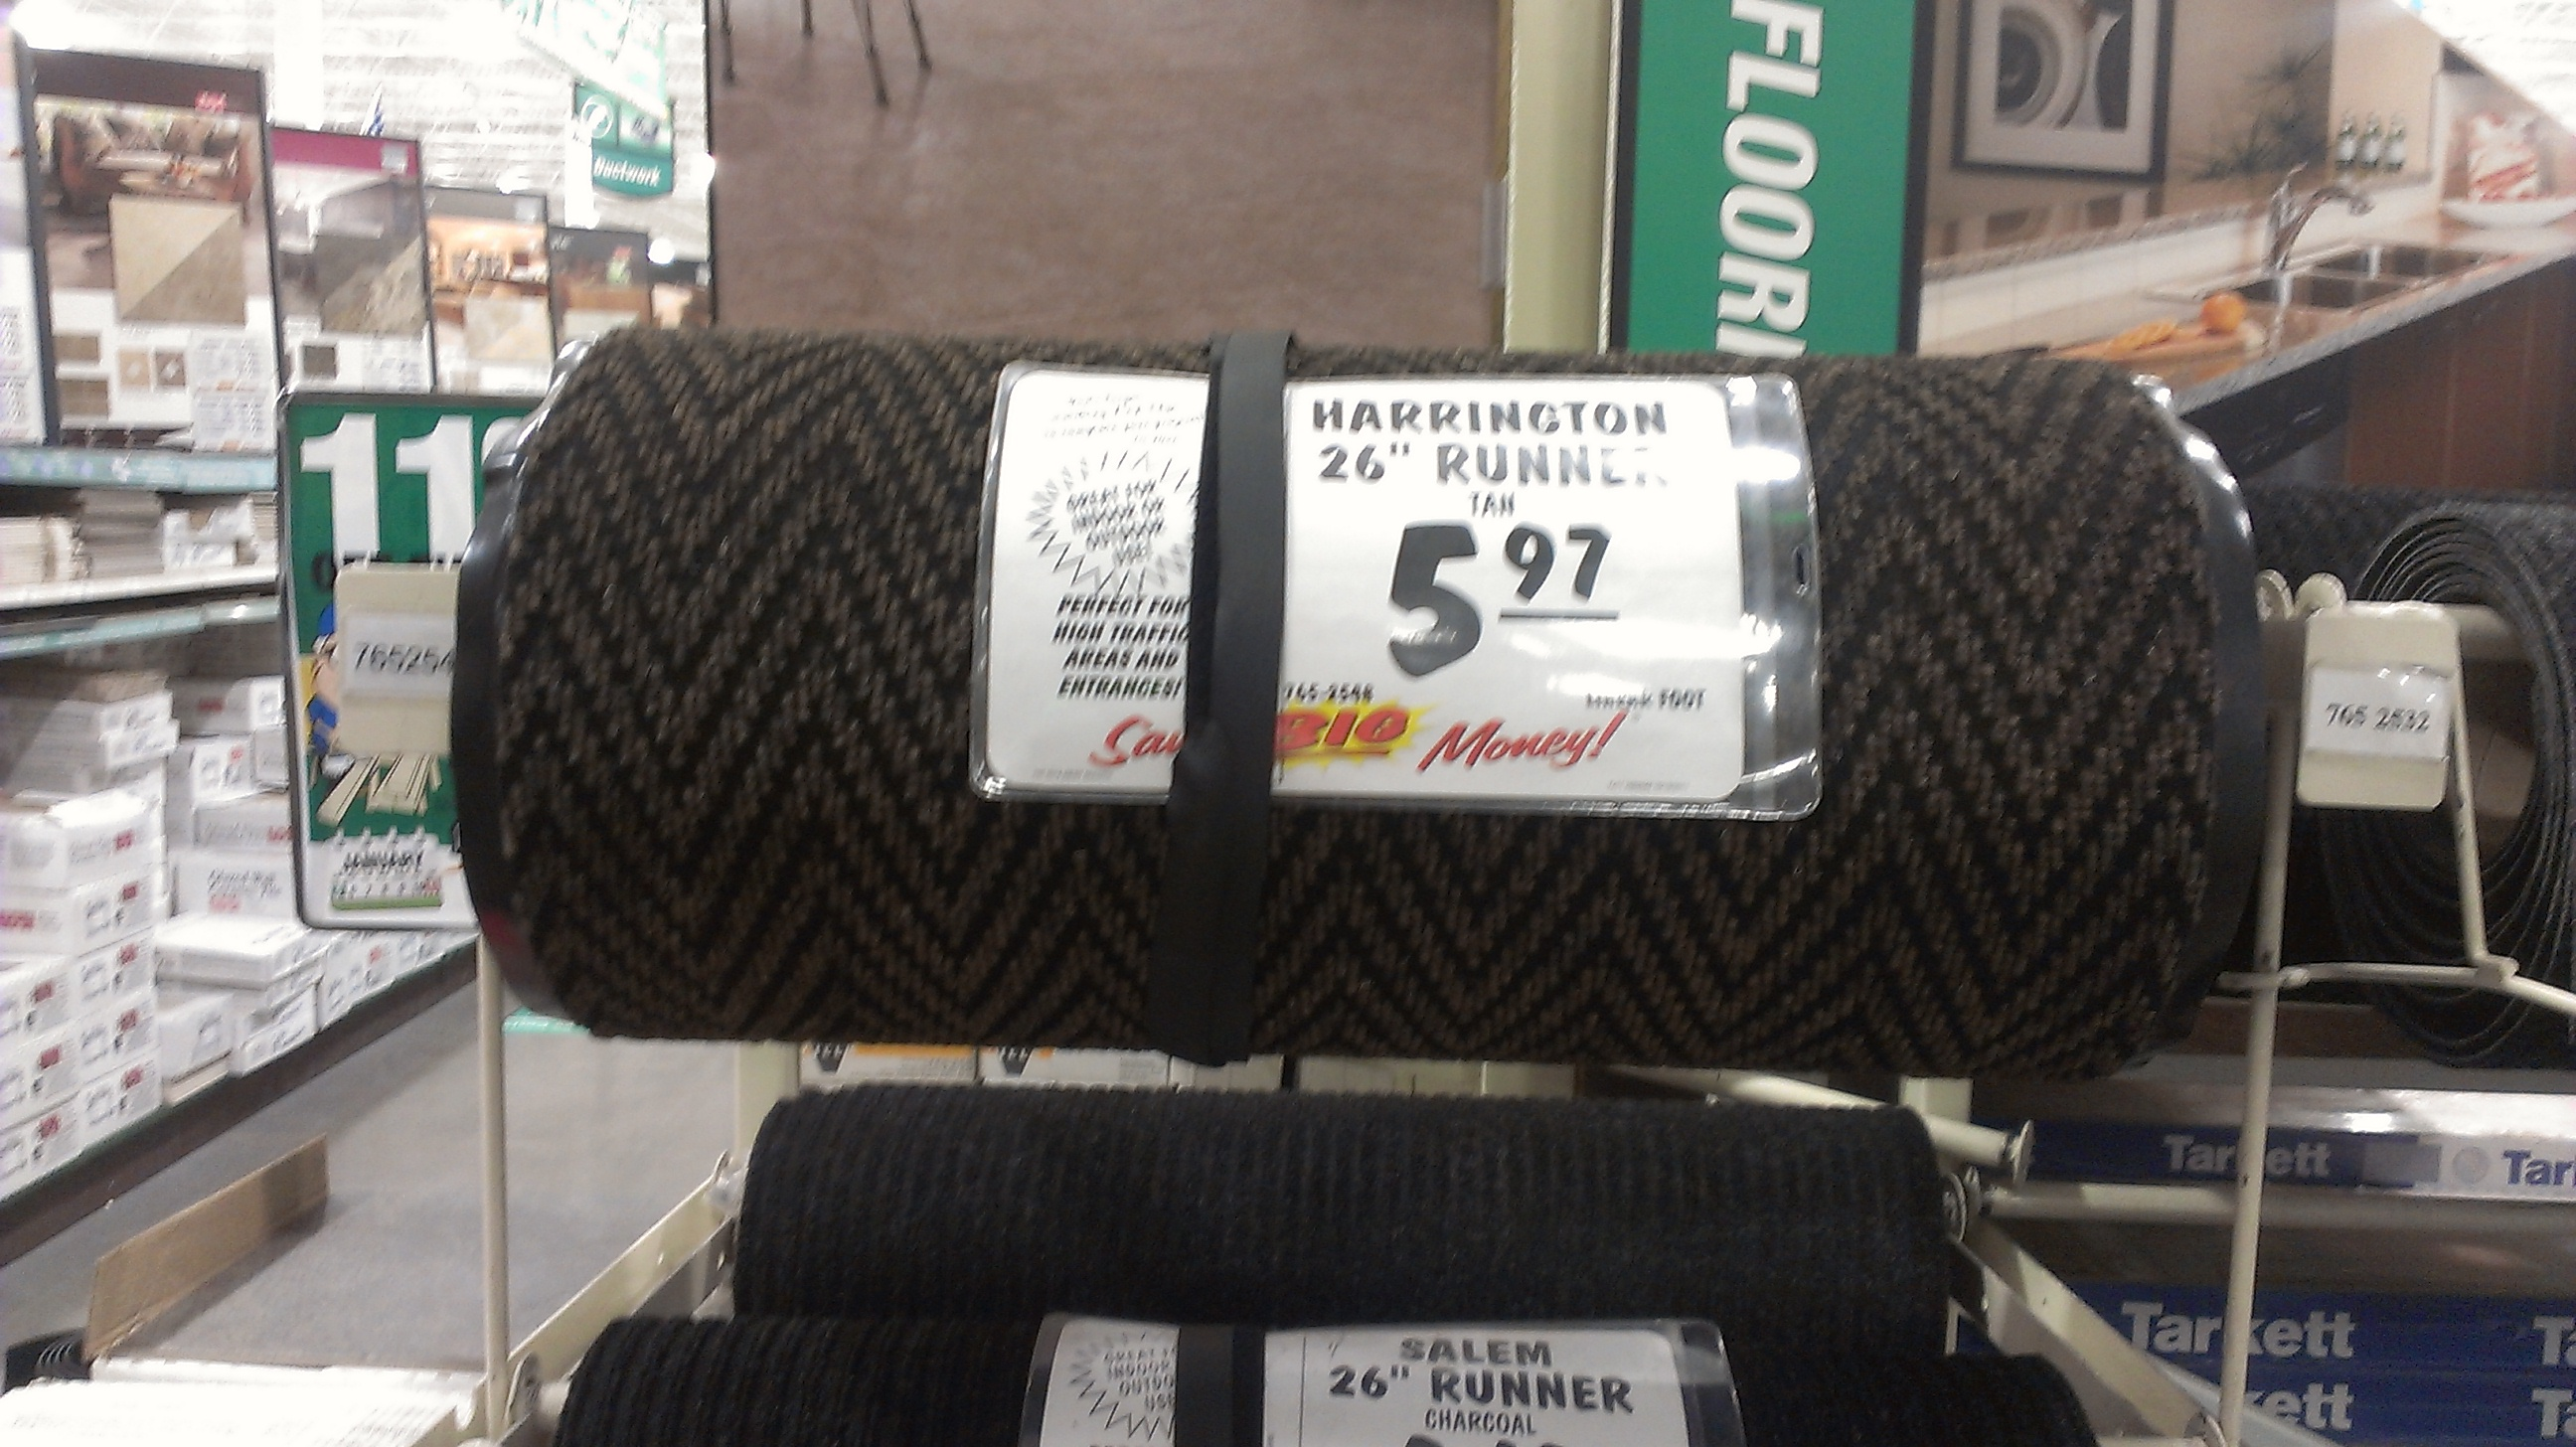 Rubber mats at menards - We Love These Floor Mats At Menards These Are A Nice For Building Owners And Manager Who Want More Matting In Their Building And Would Like An Improved Air